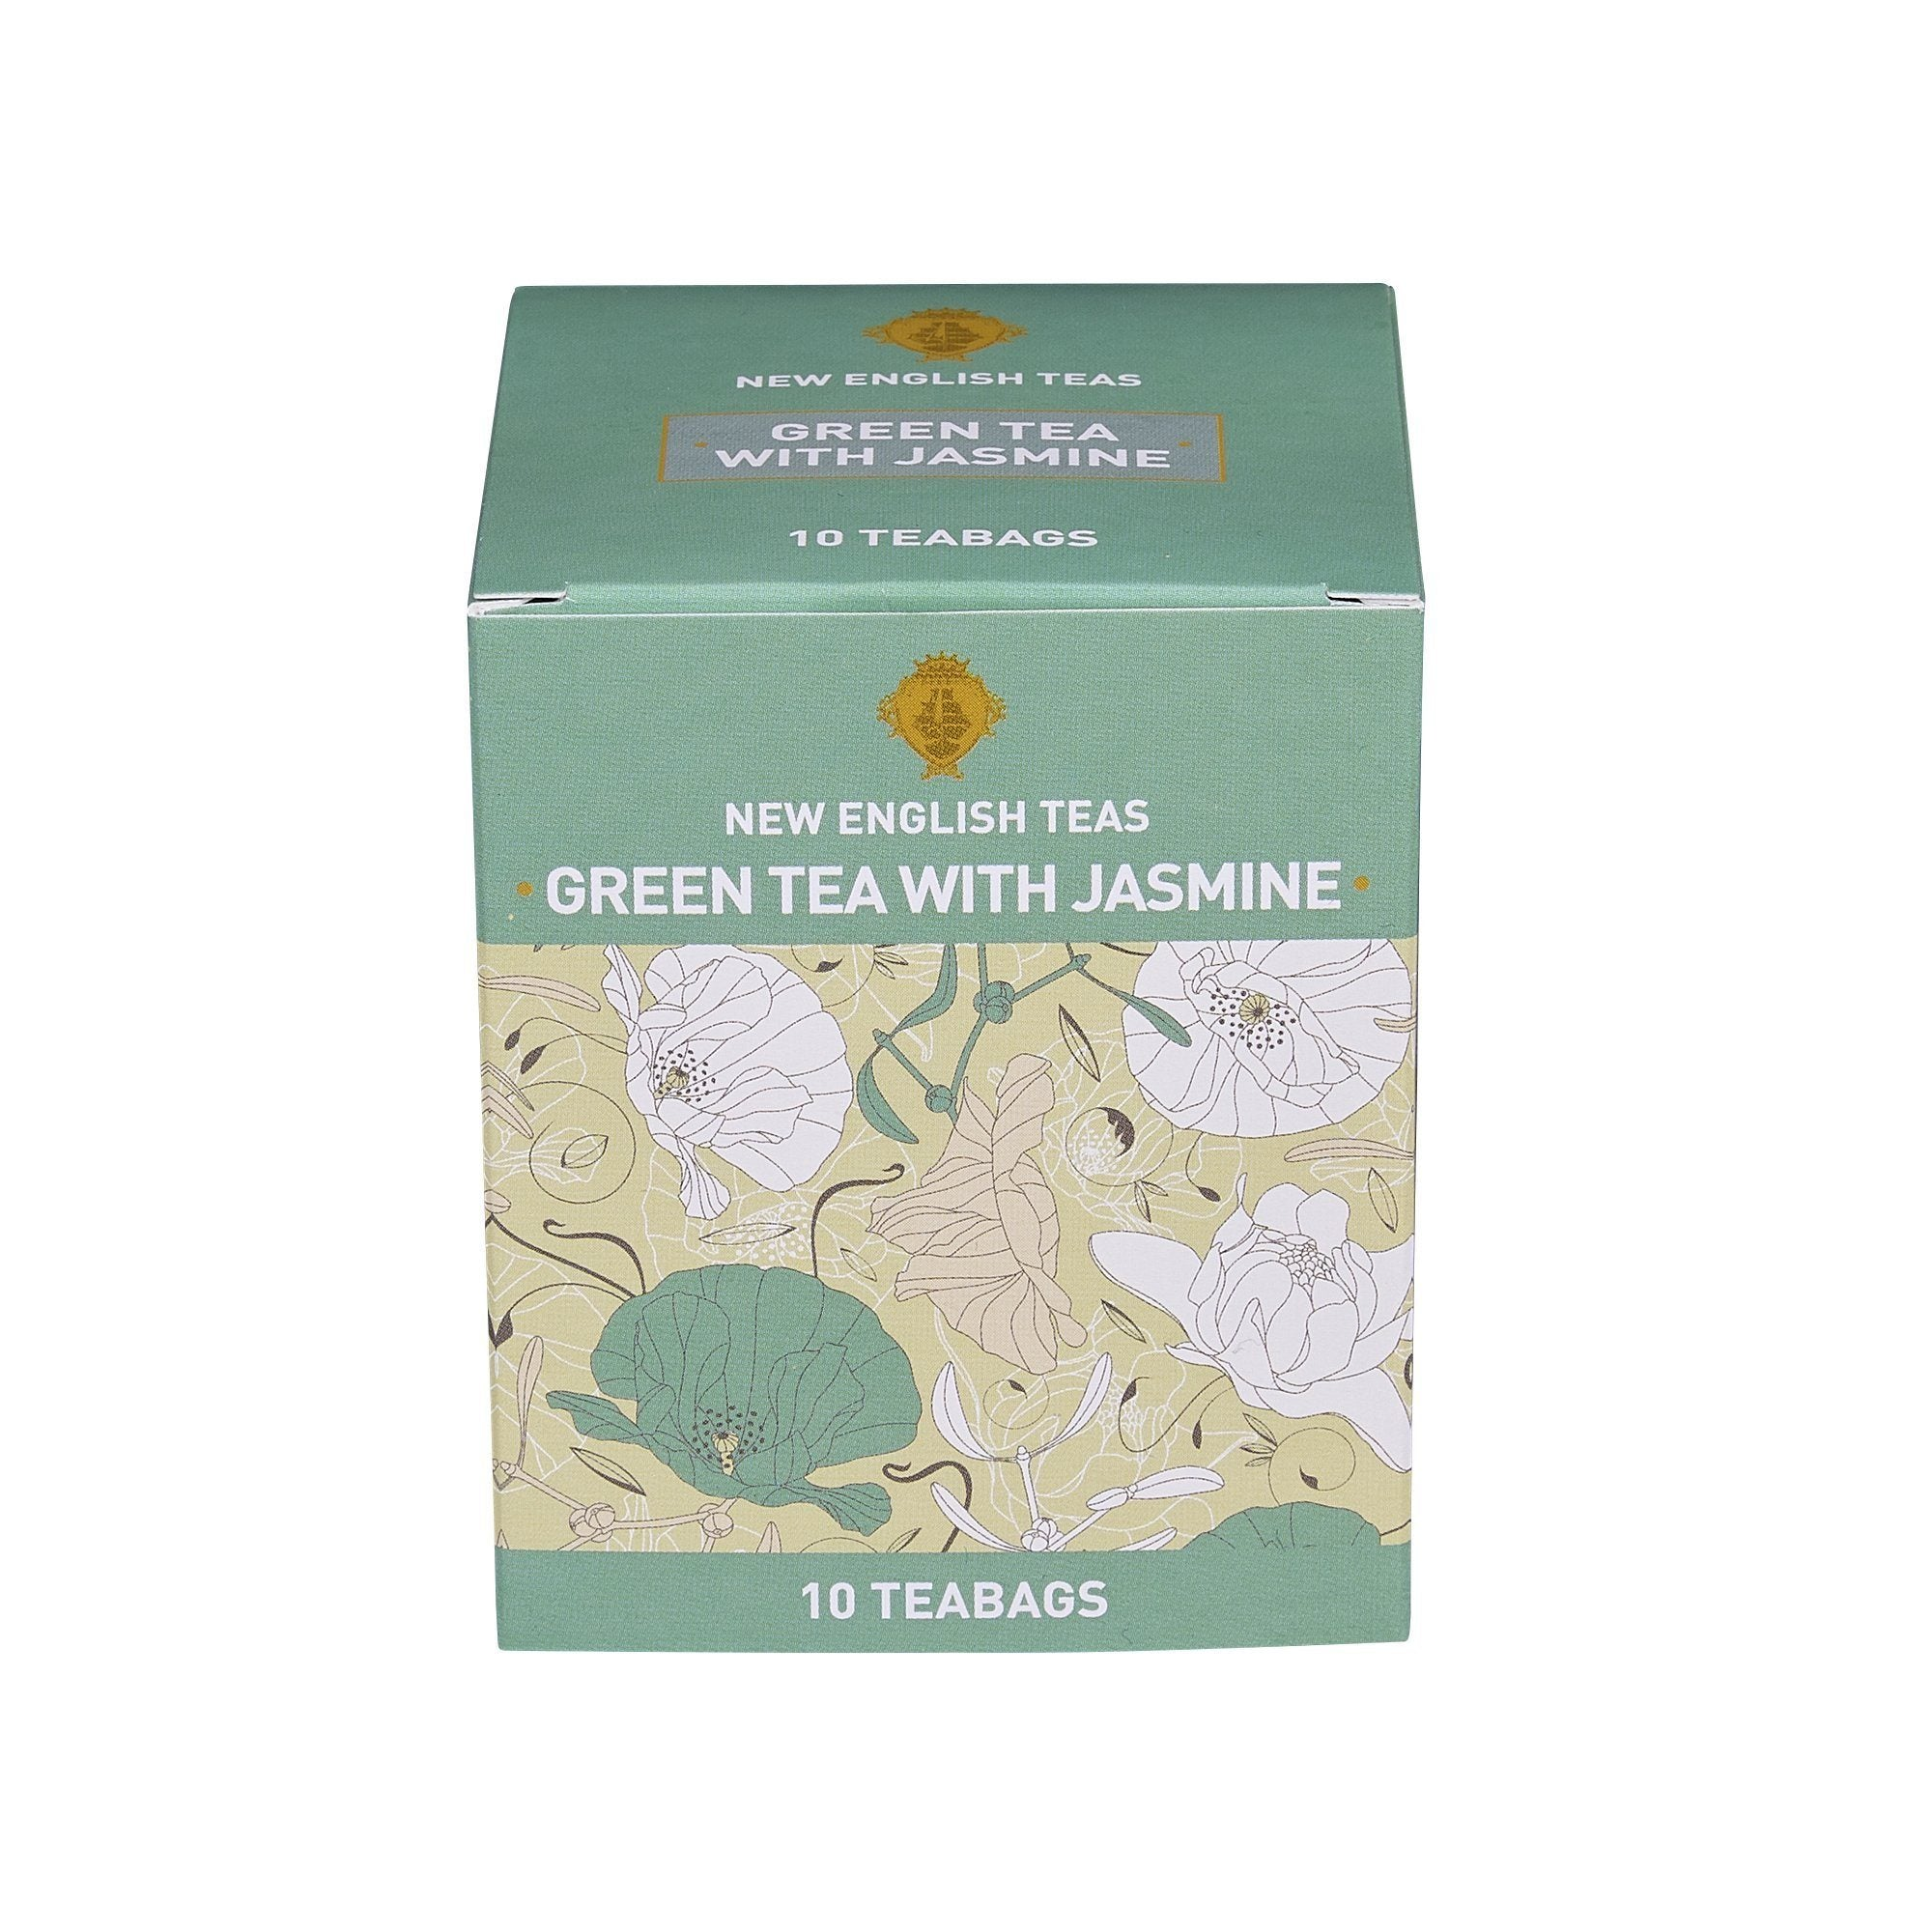 Green Tea With Jasmine 10 Individually Wrapped Teabags Green Tea New English Teas